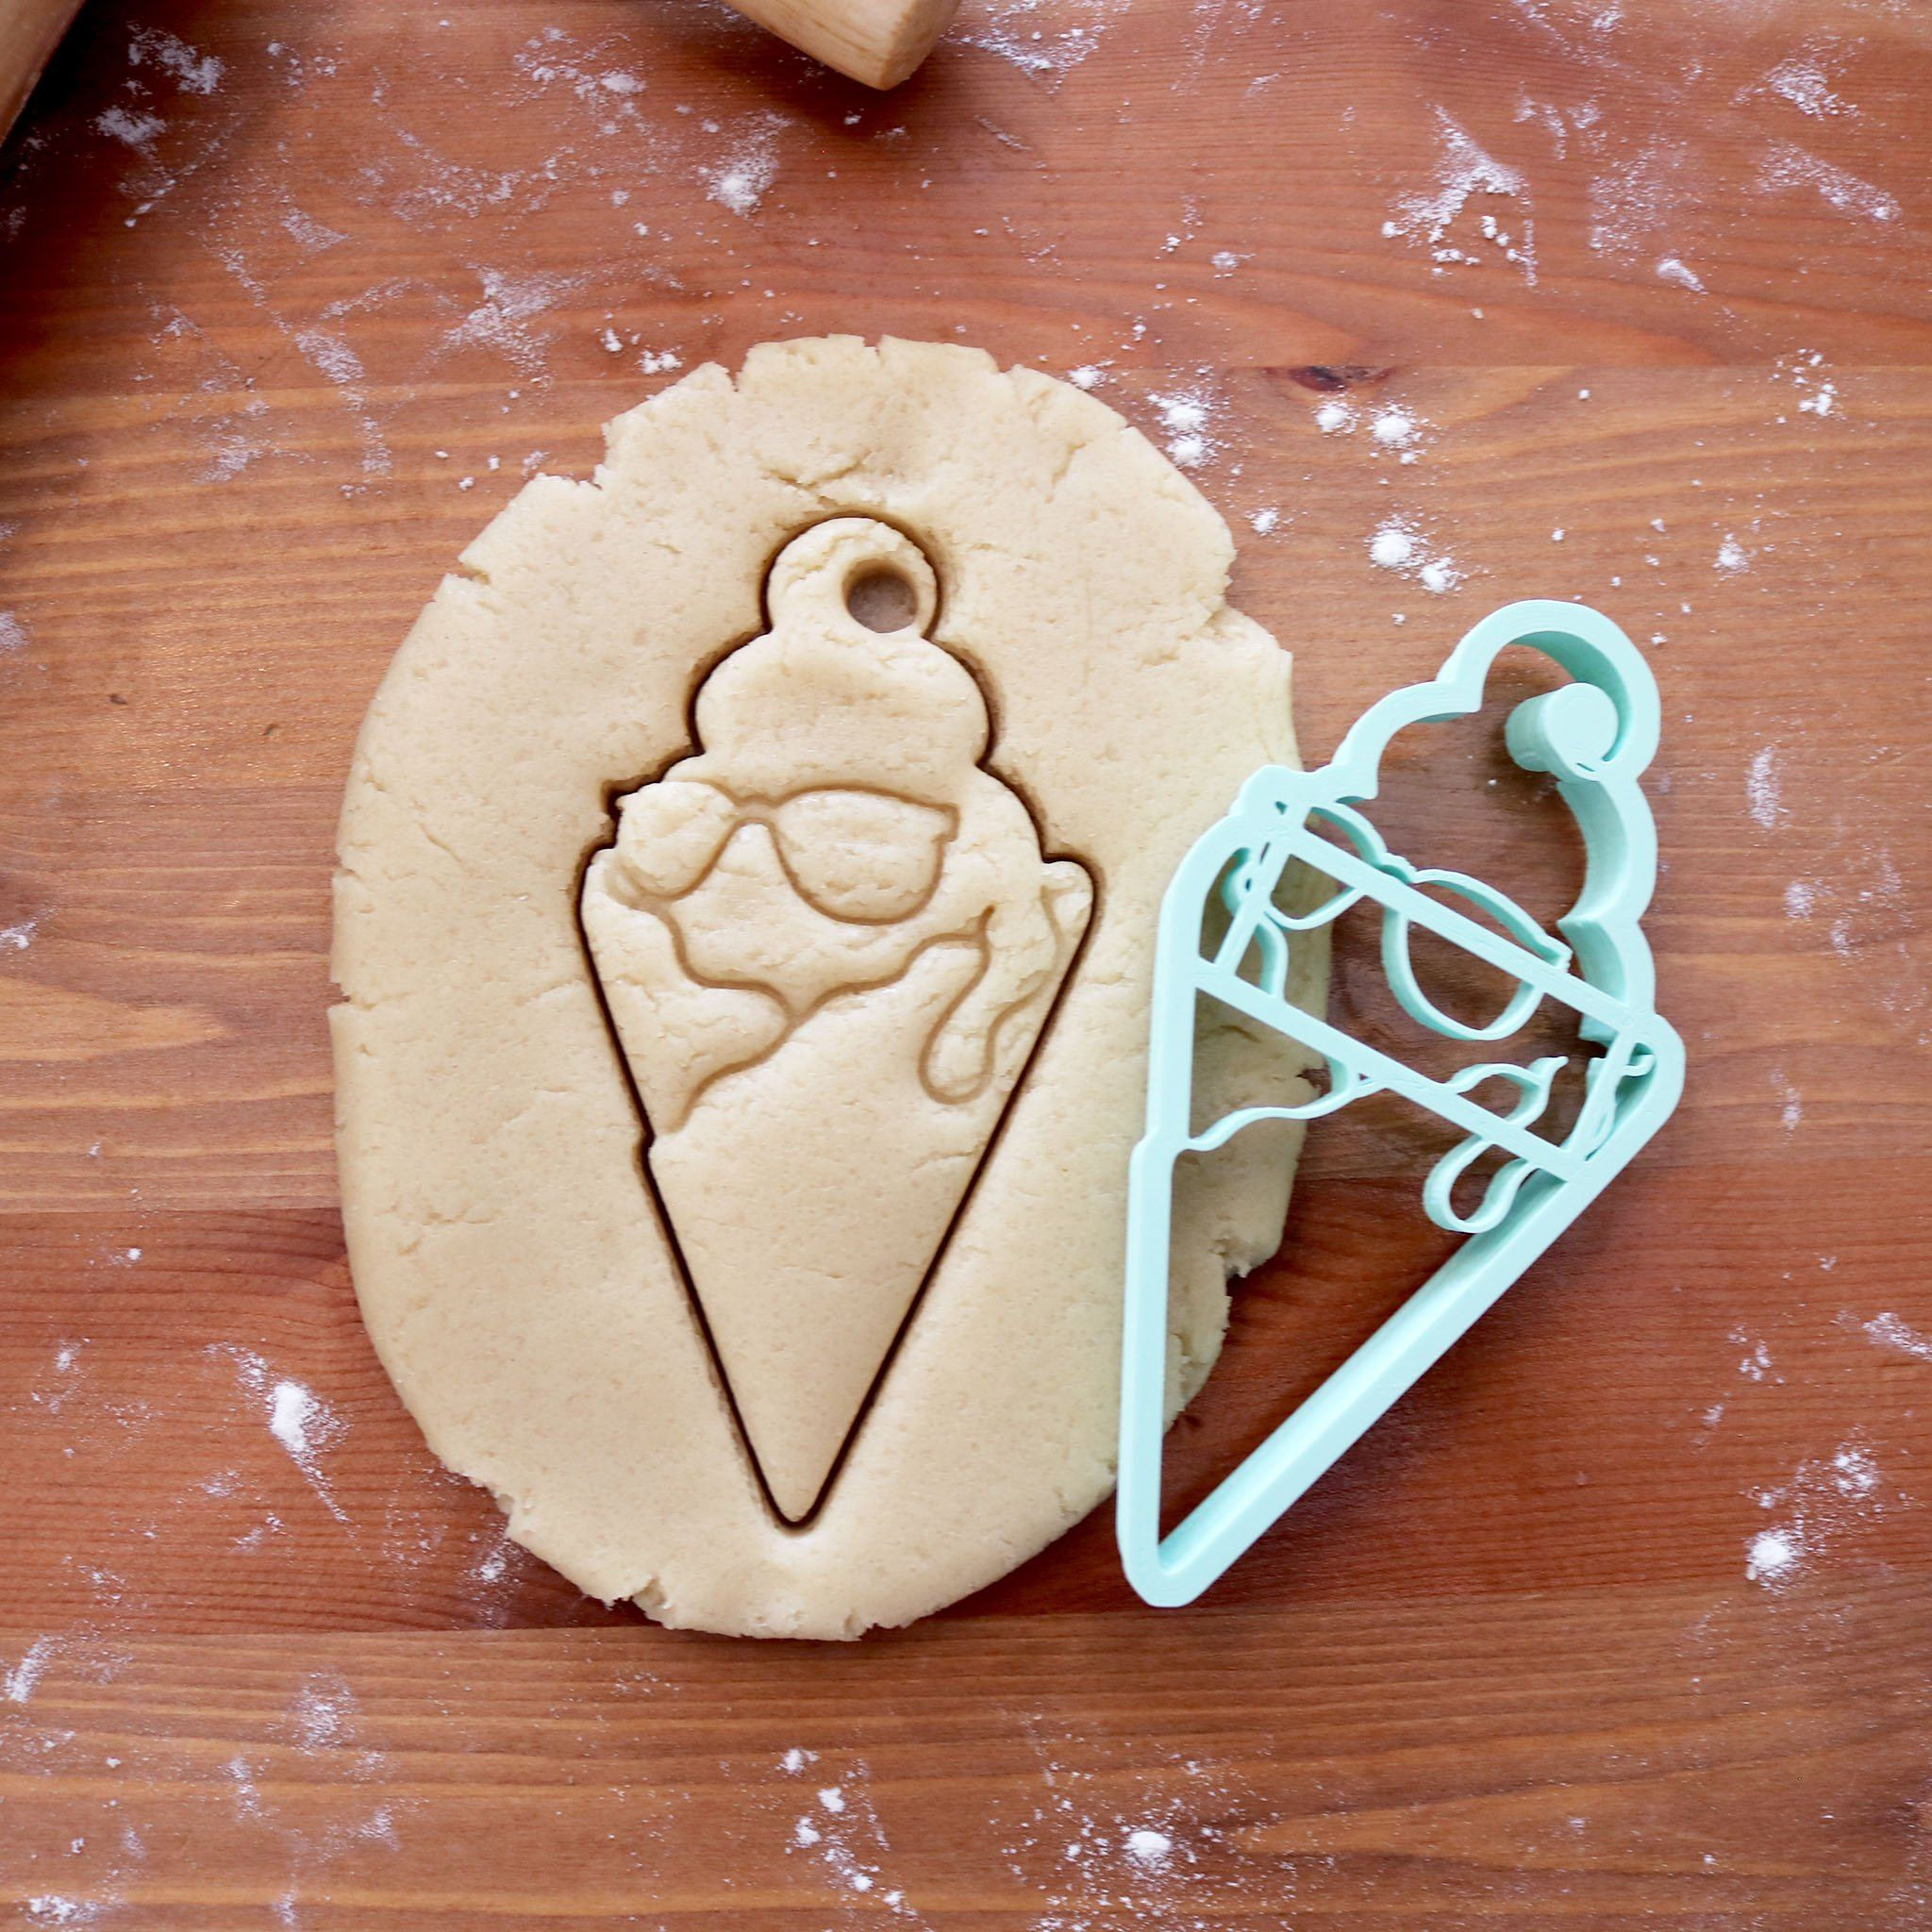 Shady Ice Cream Cone Cookie Cutter